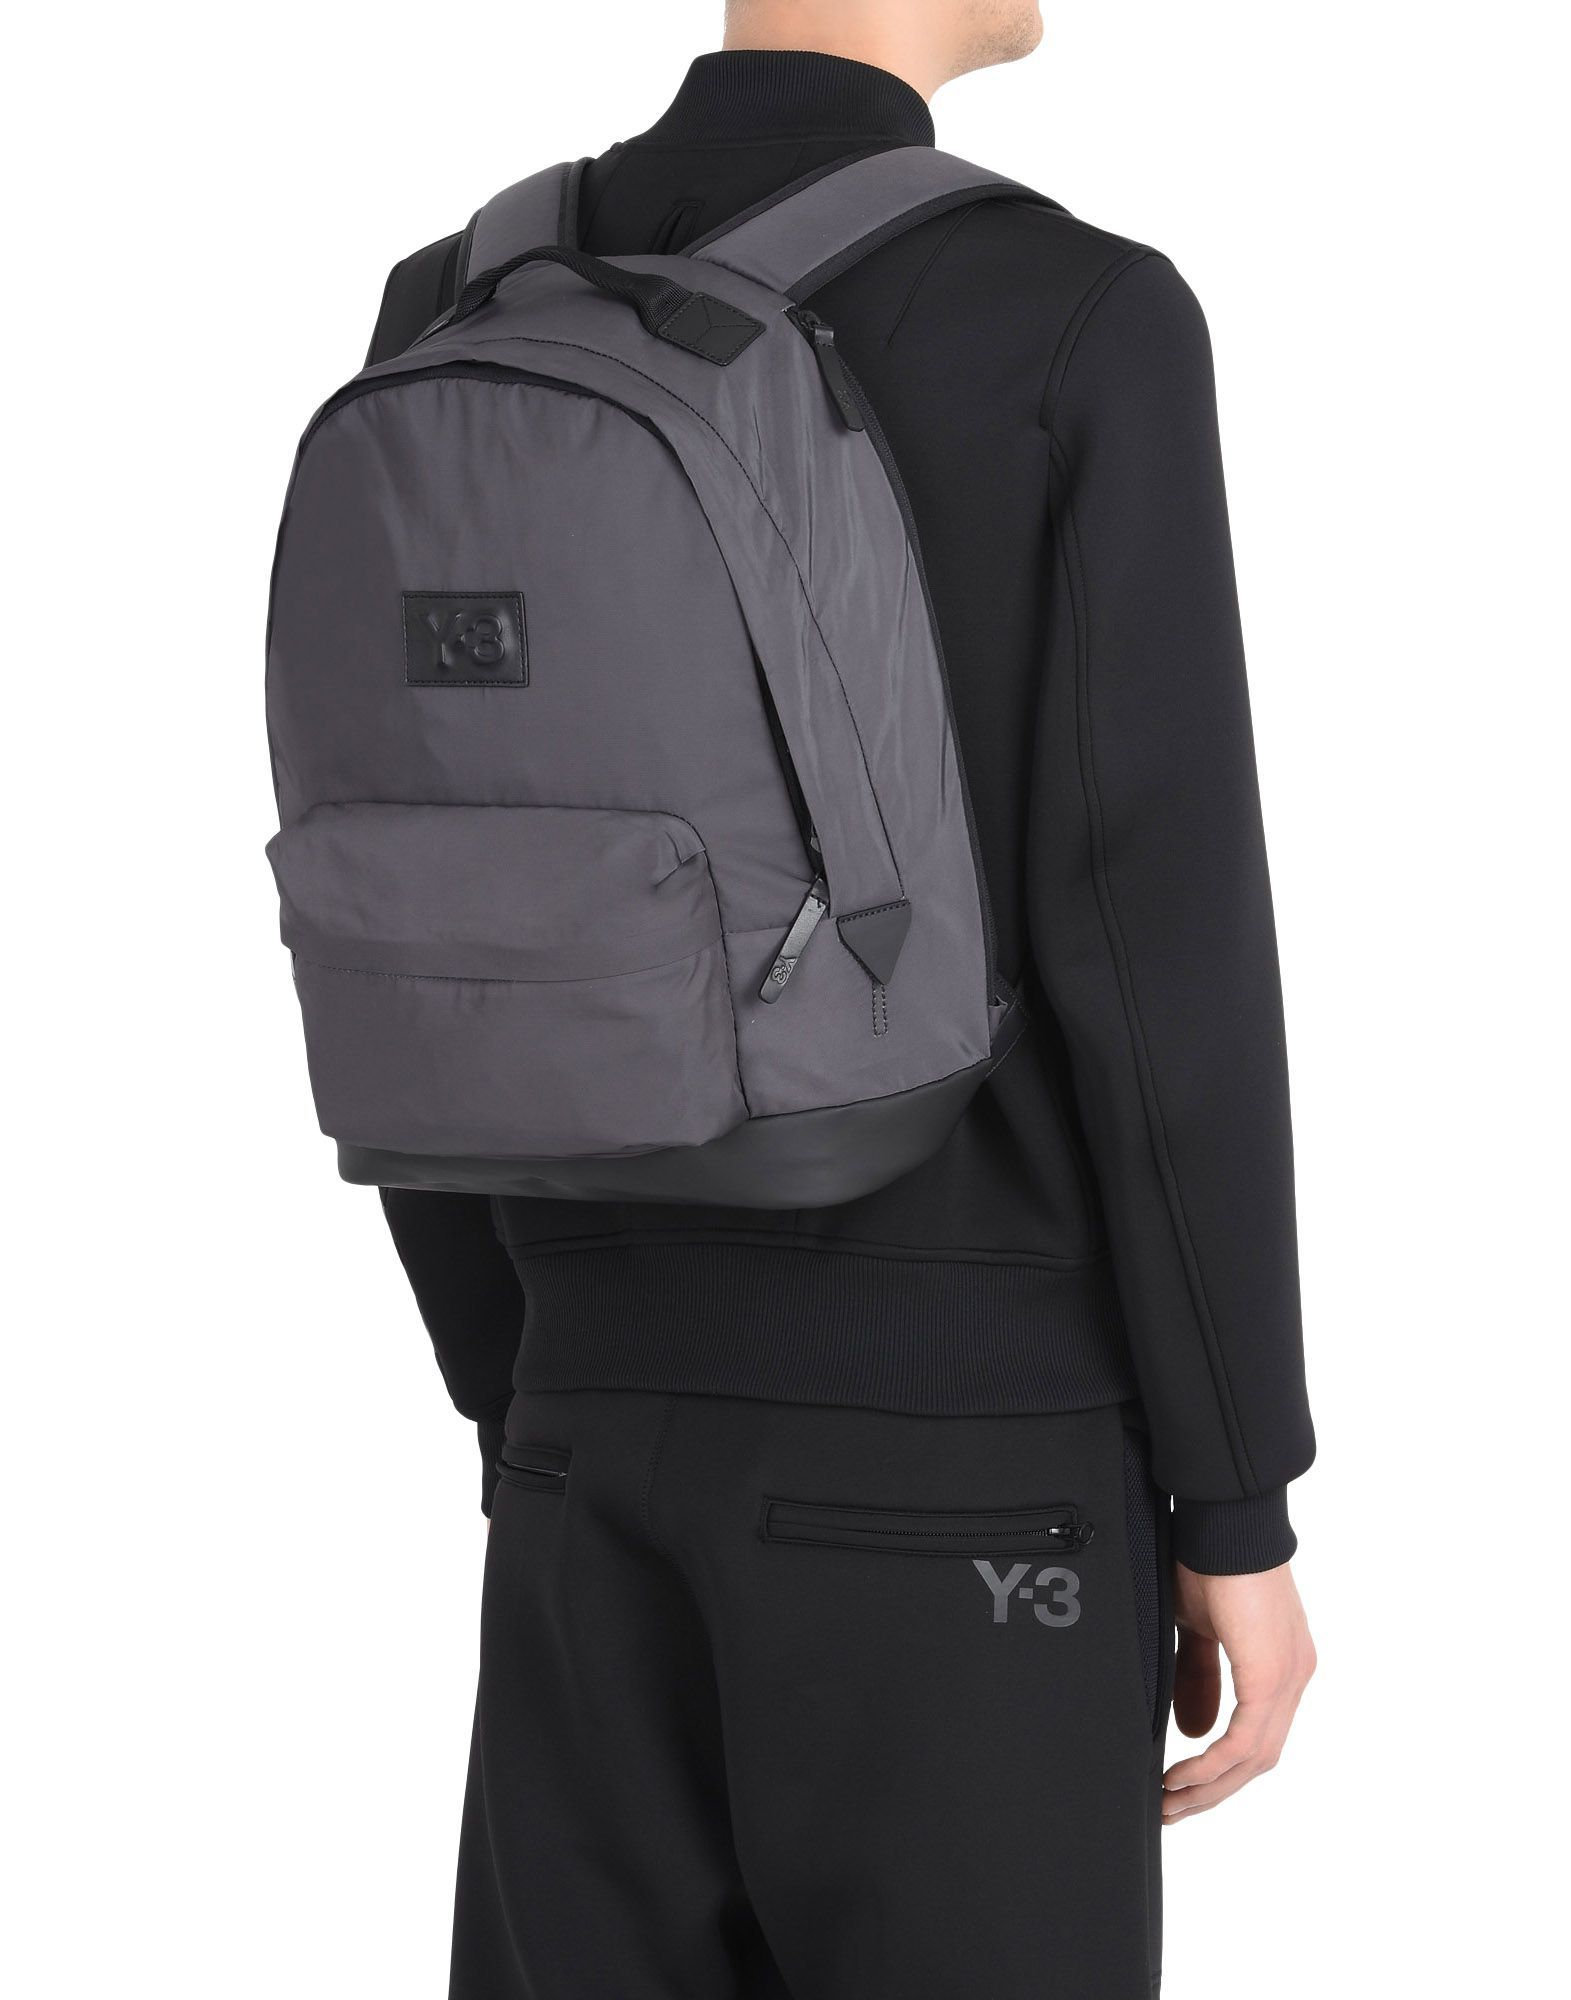 2b1b56317751 Adidas - Y-3 TECHLITE BACKPACK - grey unisex